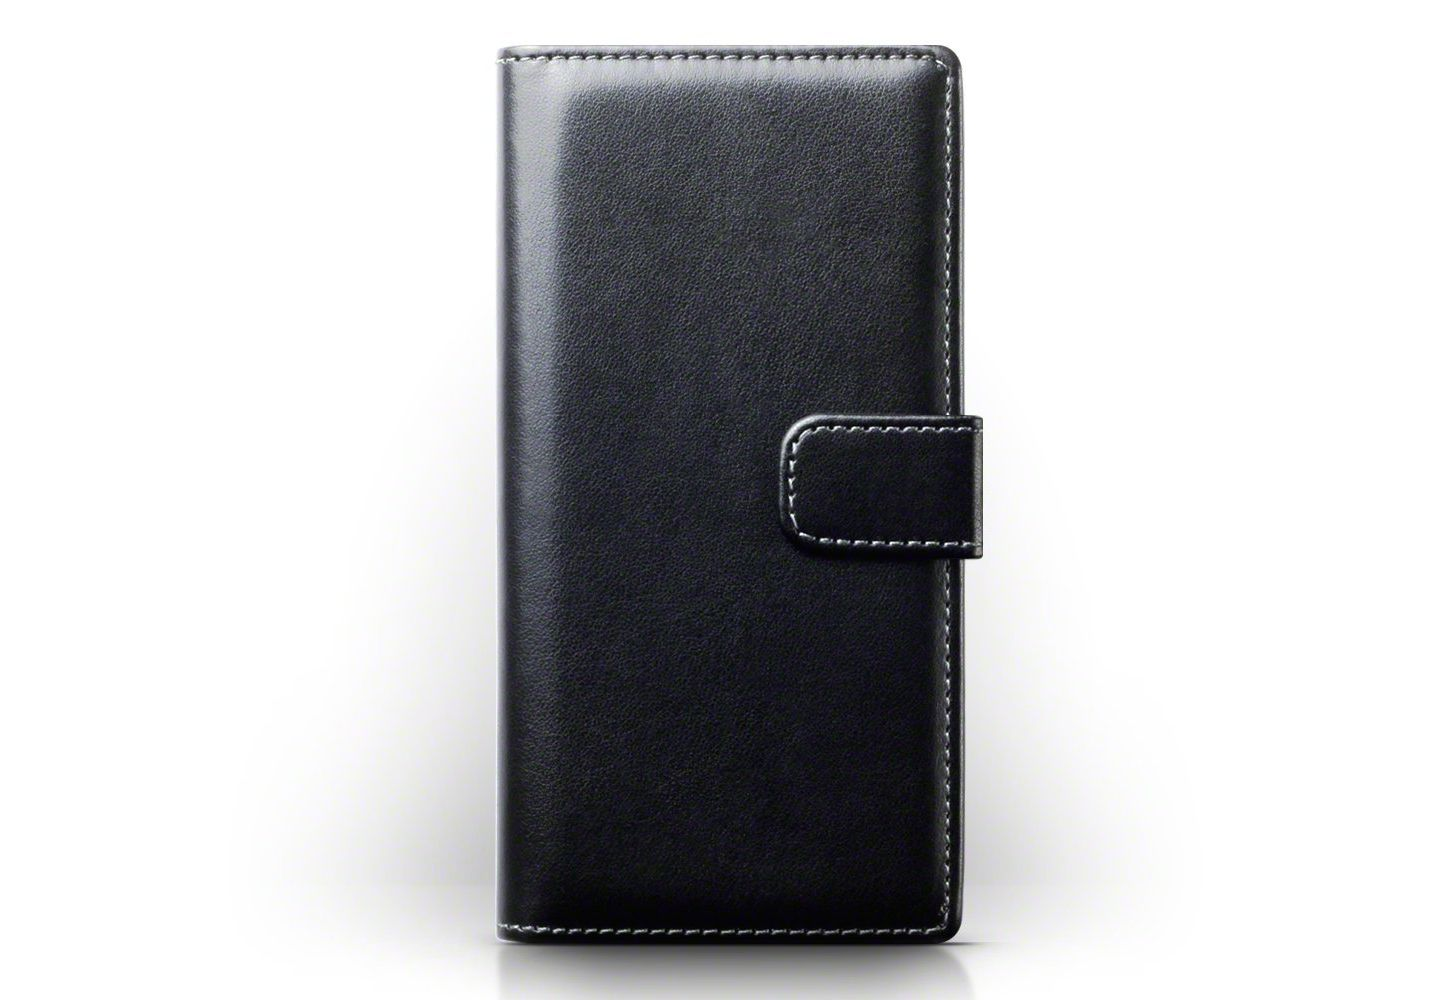 Sony Xperia L1 PU Leather Wallet Case - Black